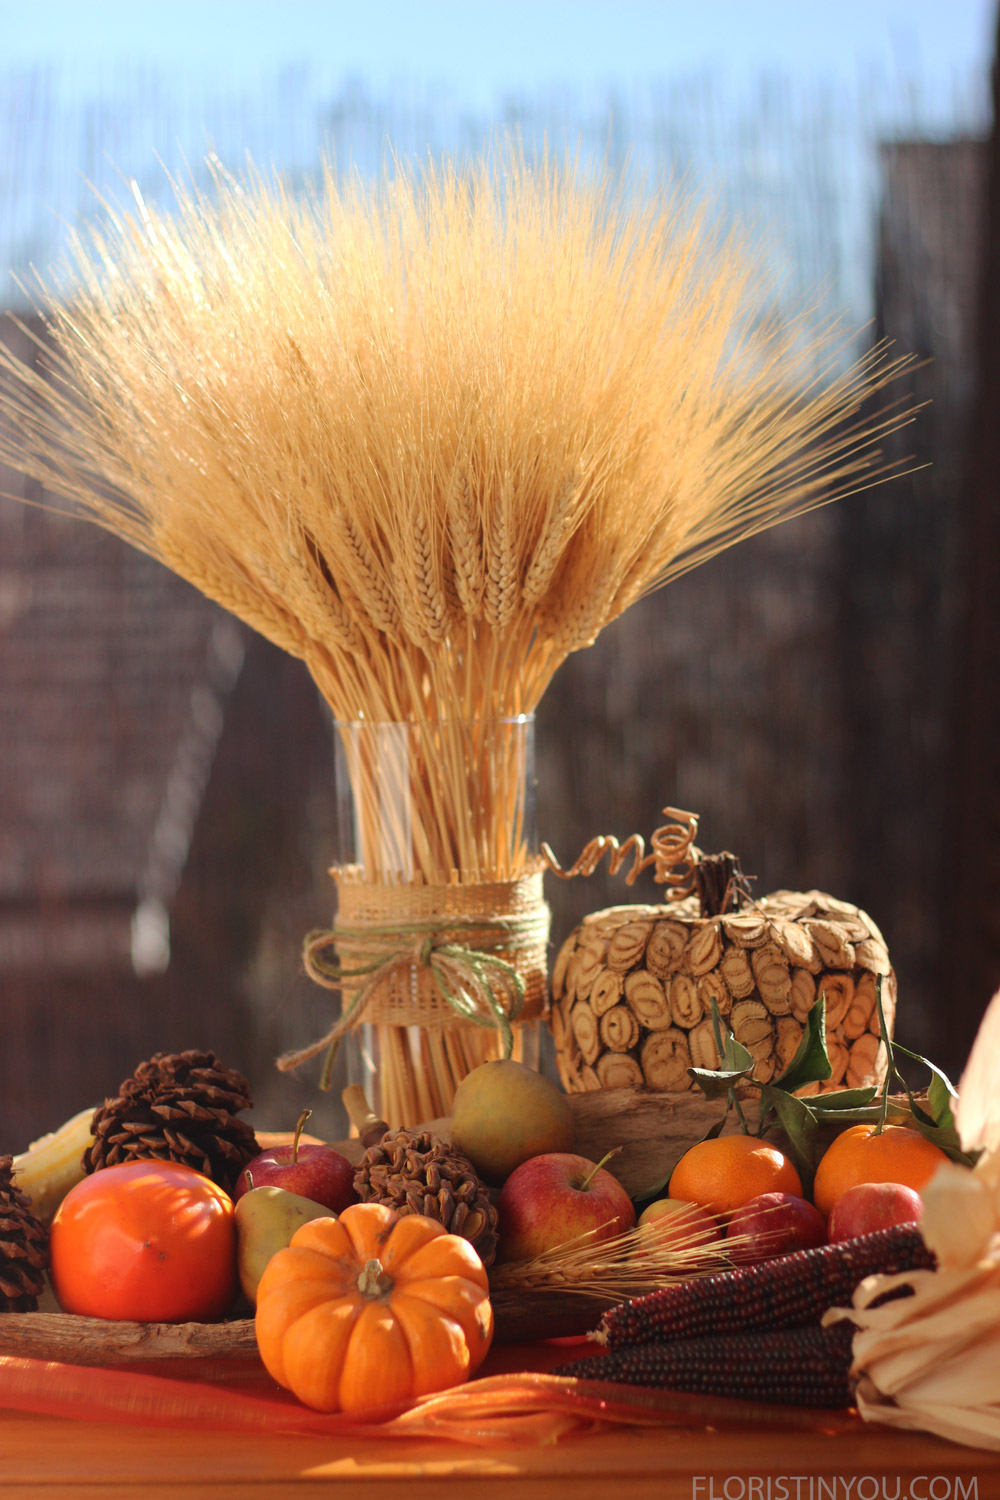 Harvest Wheat and Fruit